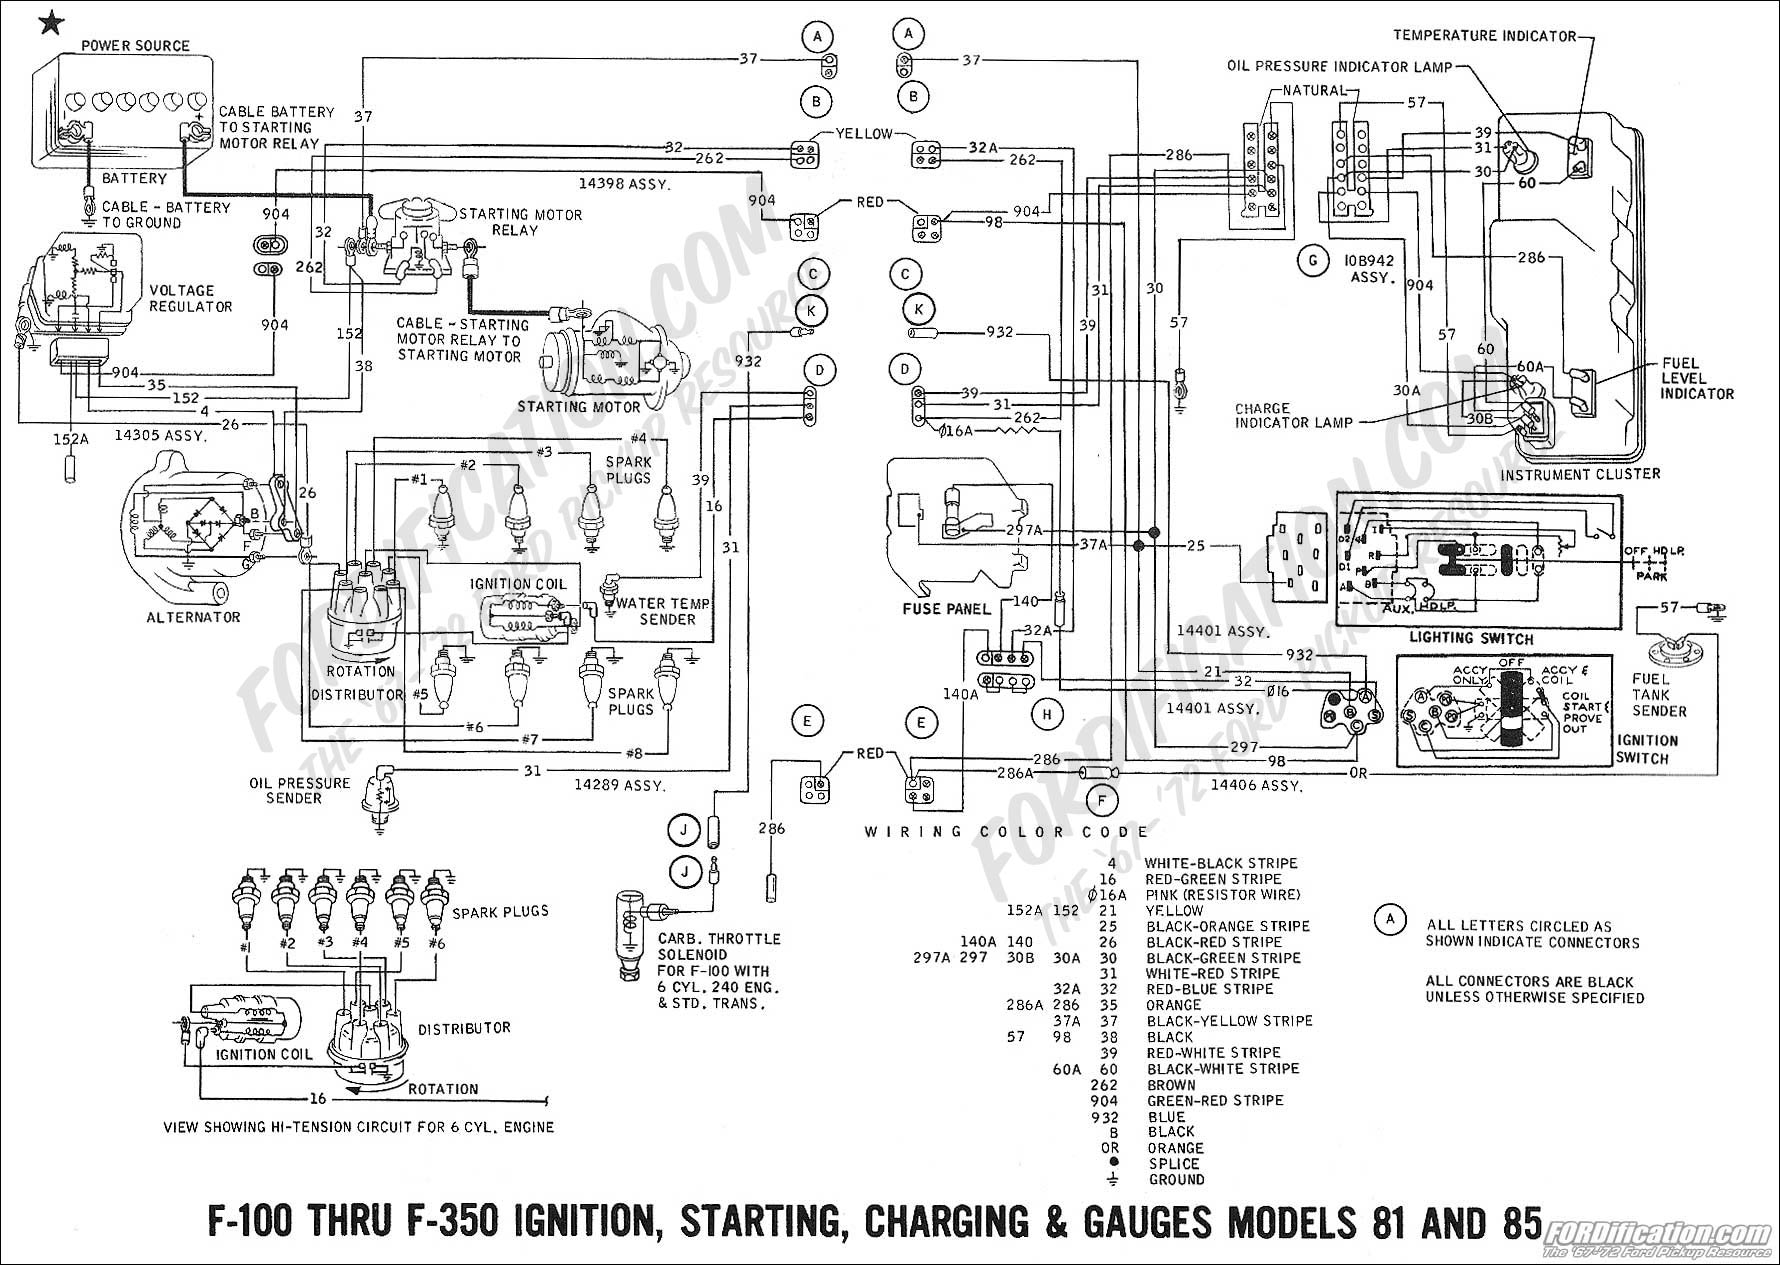 Chevy Truck Distributor Wiring Diagram